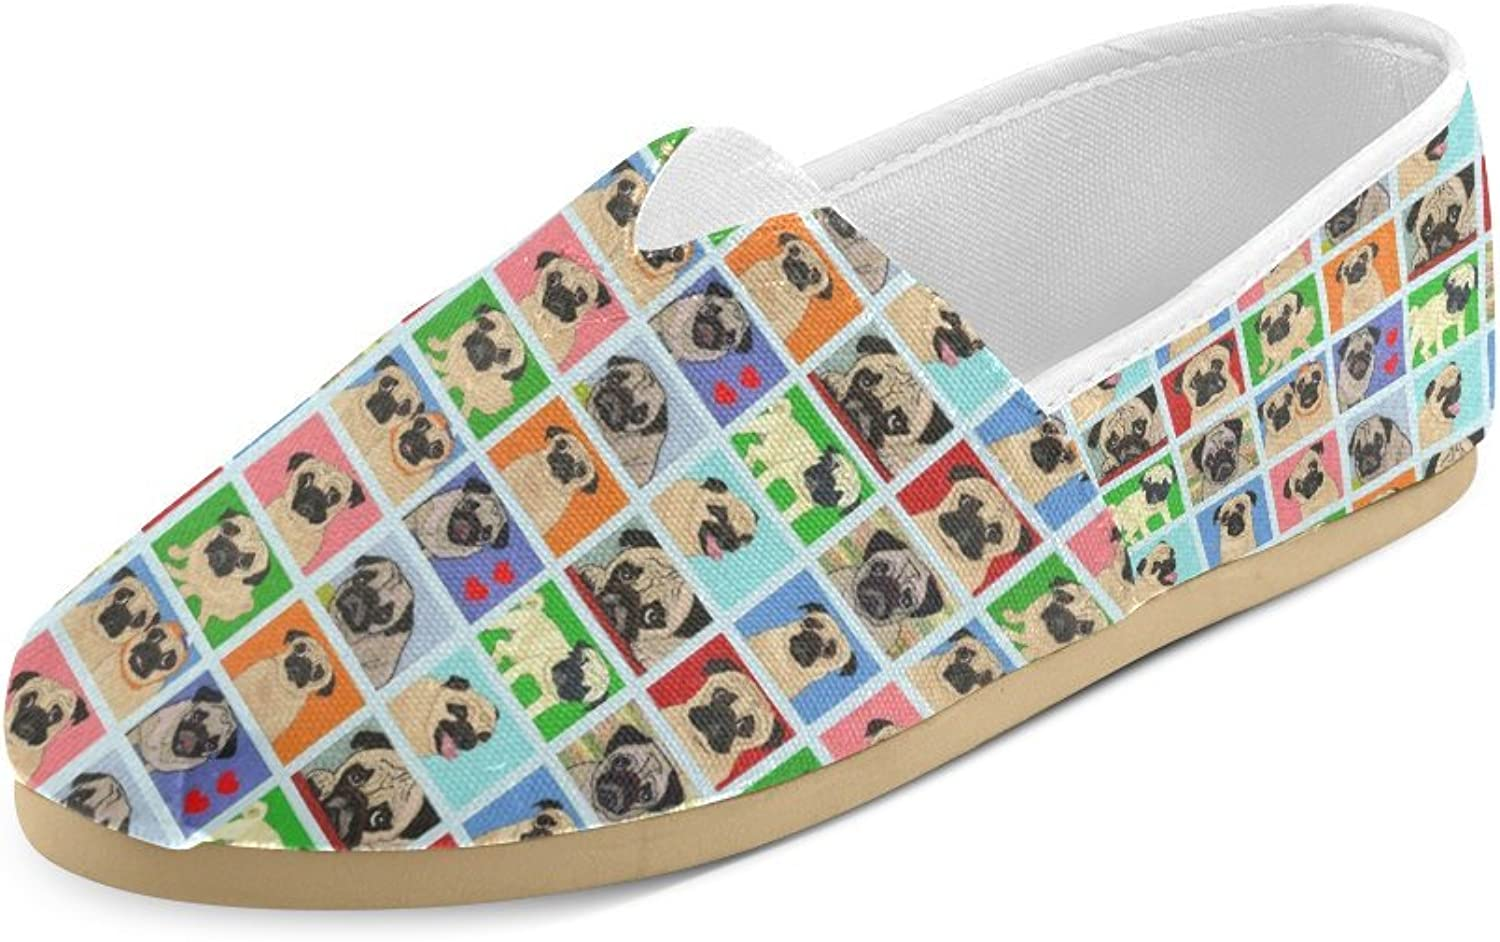 HUANGDAISY Unisex shoes Cartoon Pugs Background Casual Canvas Loafers for Bia Kids Girl Or Men